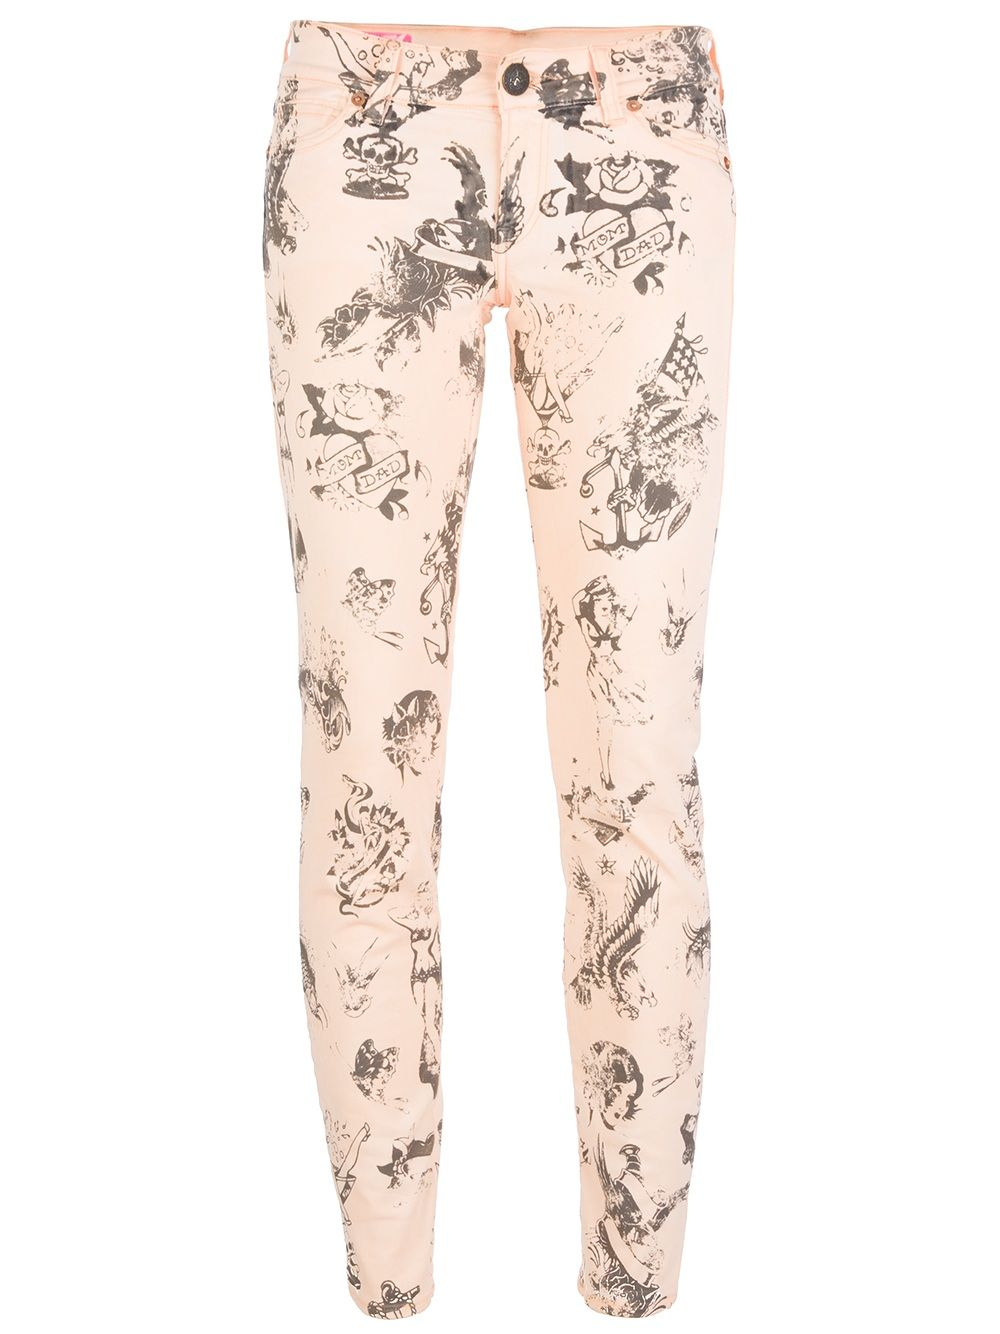 Pale pink cotton blend jean from Shield Denim featuring a skinny fit leg with faded black old school tattoo prints, a waistband with belt loops, a top button fastening, a concealed front fastening, a classic five pocket design and a signature yellow logo detail at the rear.